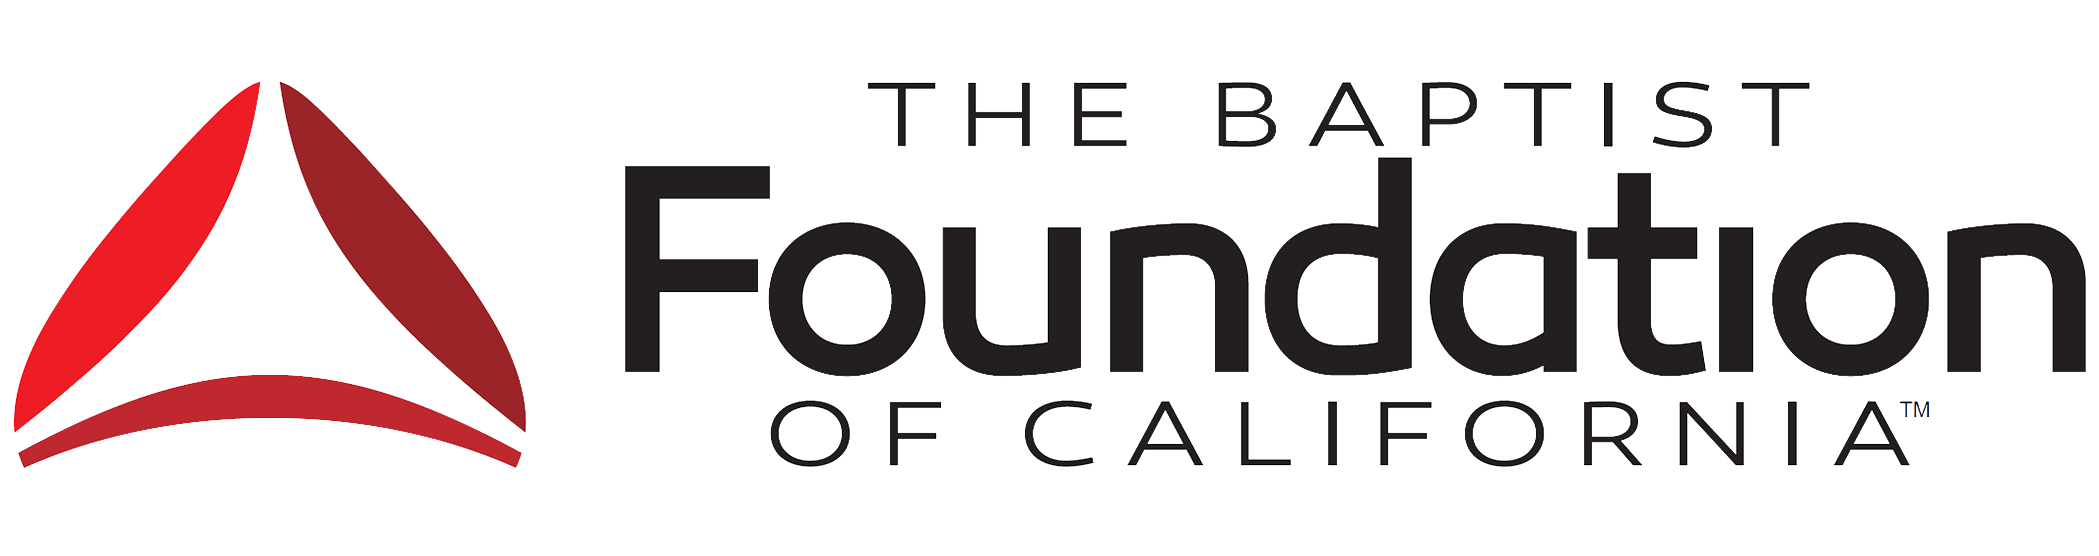 The Baptist Foundation of California